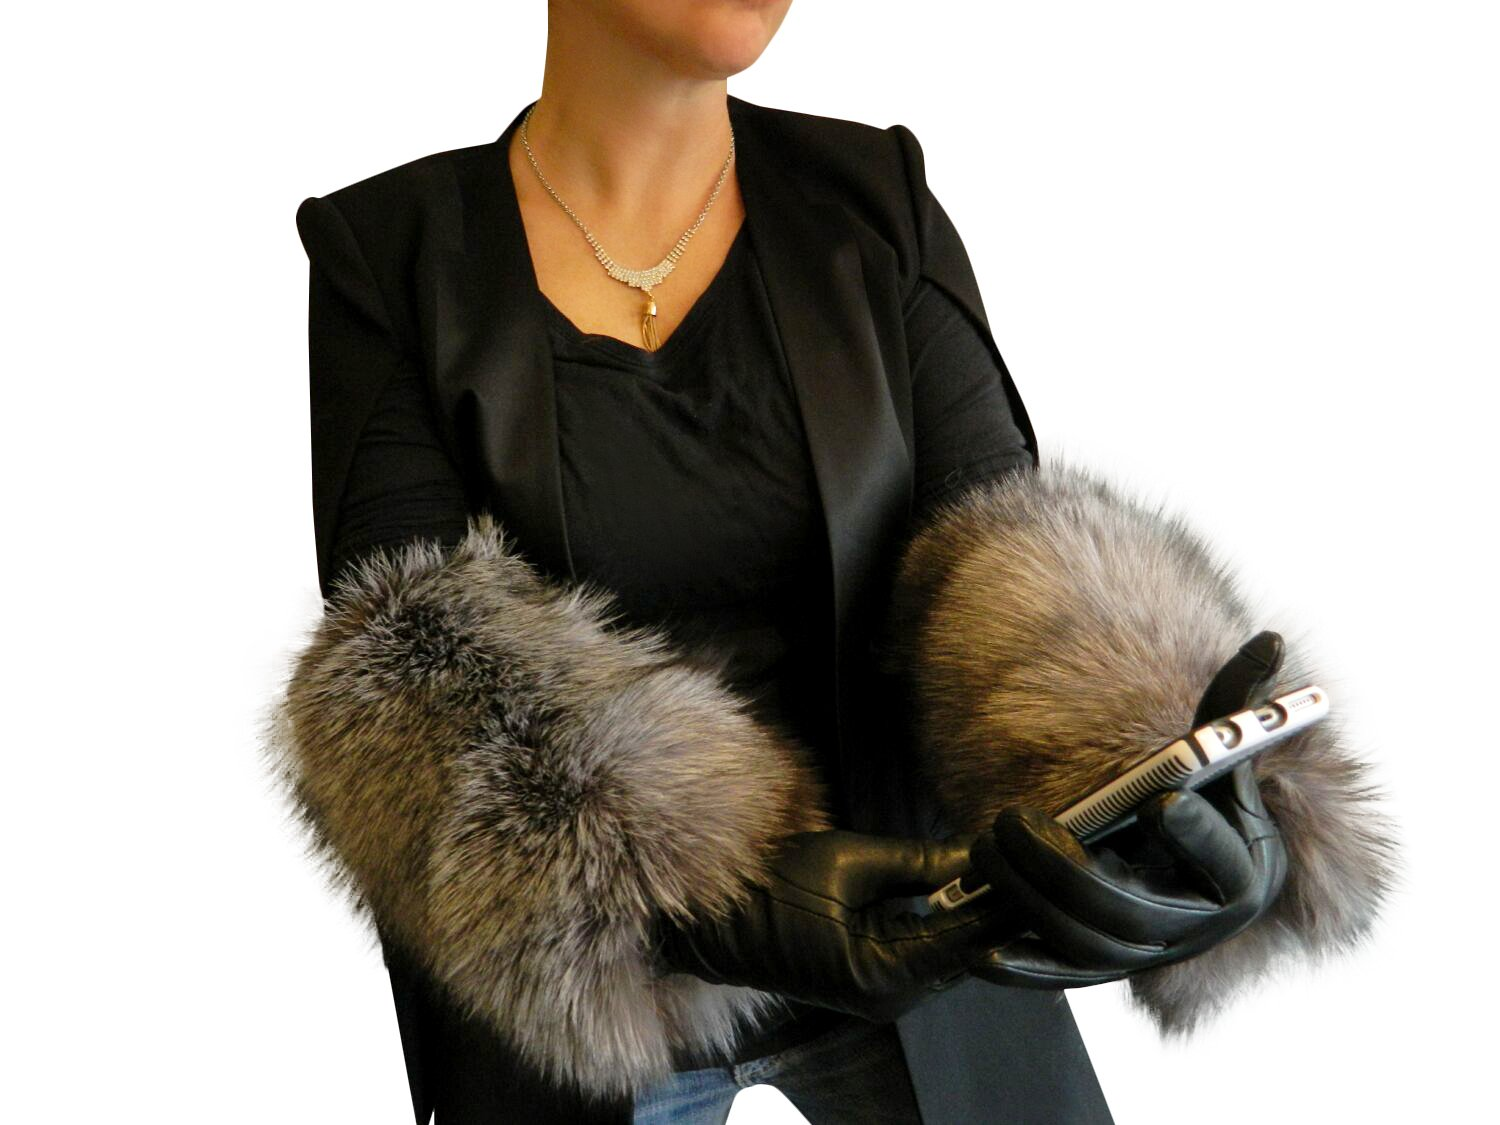 Black Cashmere Lined Leather Gloves Extended to Opera Length by Indigo Fox Cuffs 7.5 by FursNewYork (Image #1)